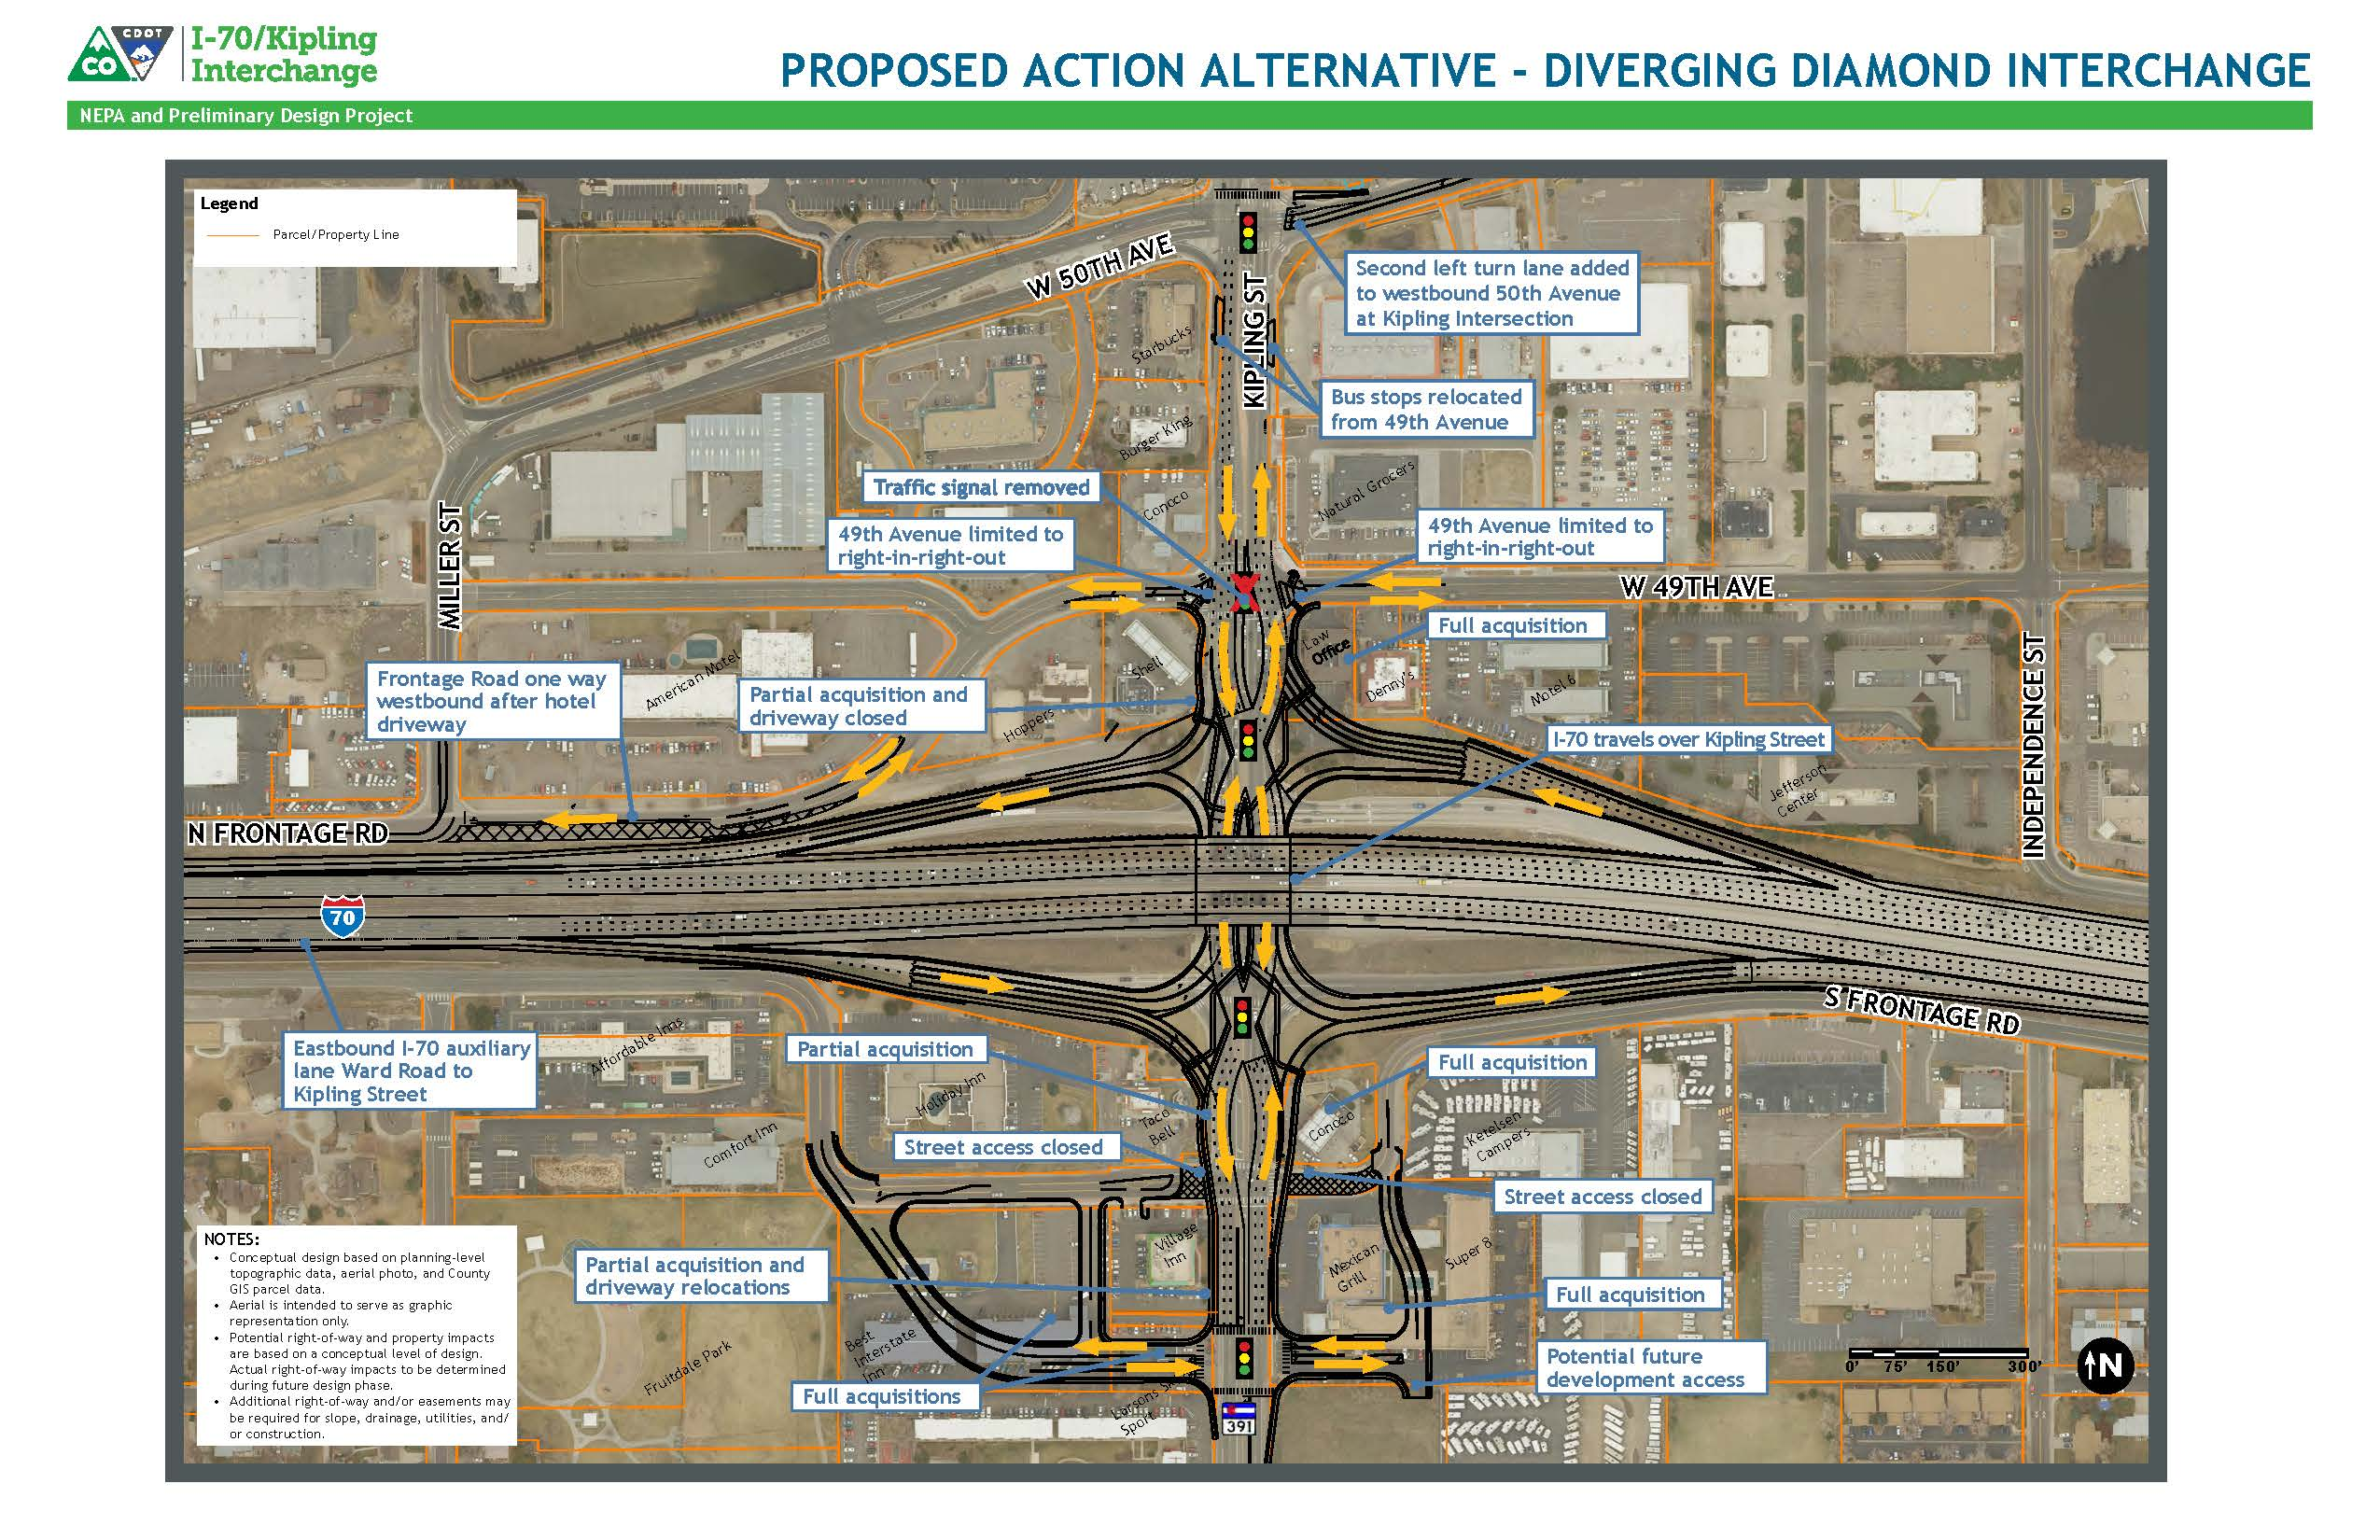 09_Proposed Action Alternative Diverging Diamond Interchange.jpg